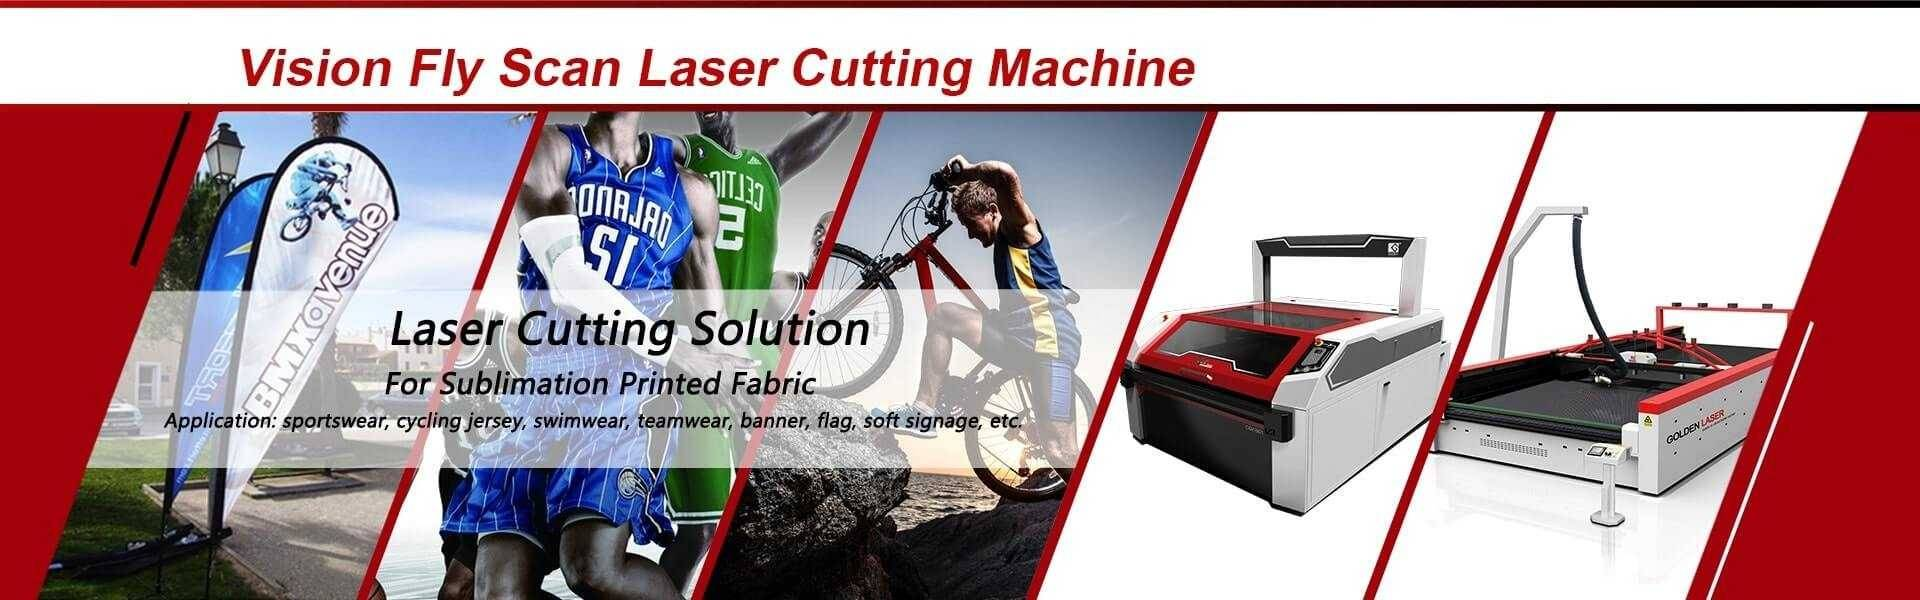 vision laser cutting machine-SGIA banner